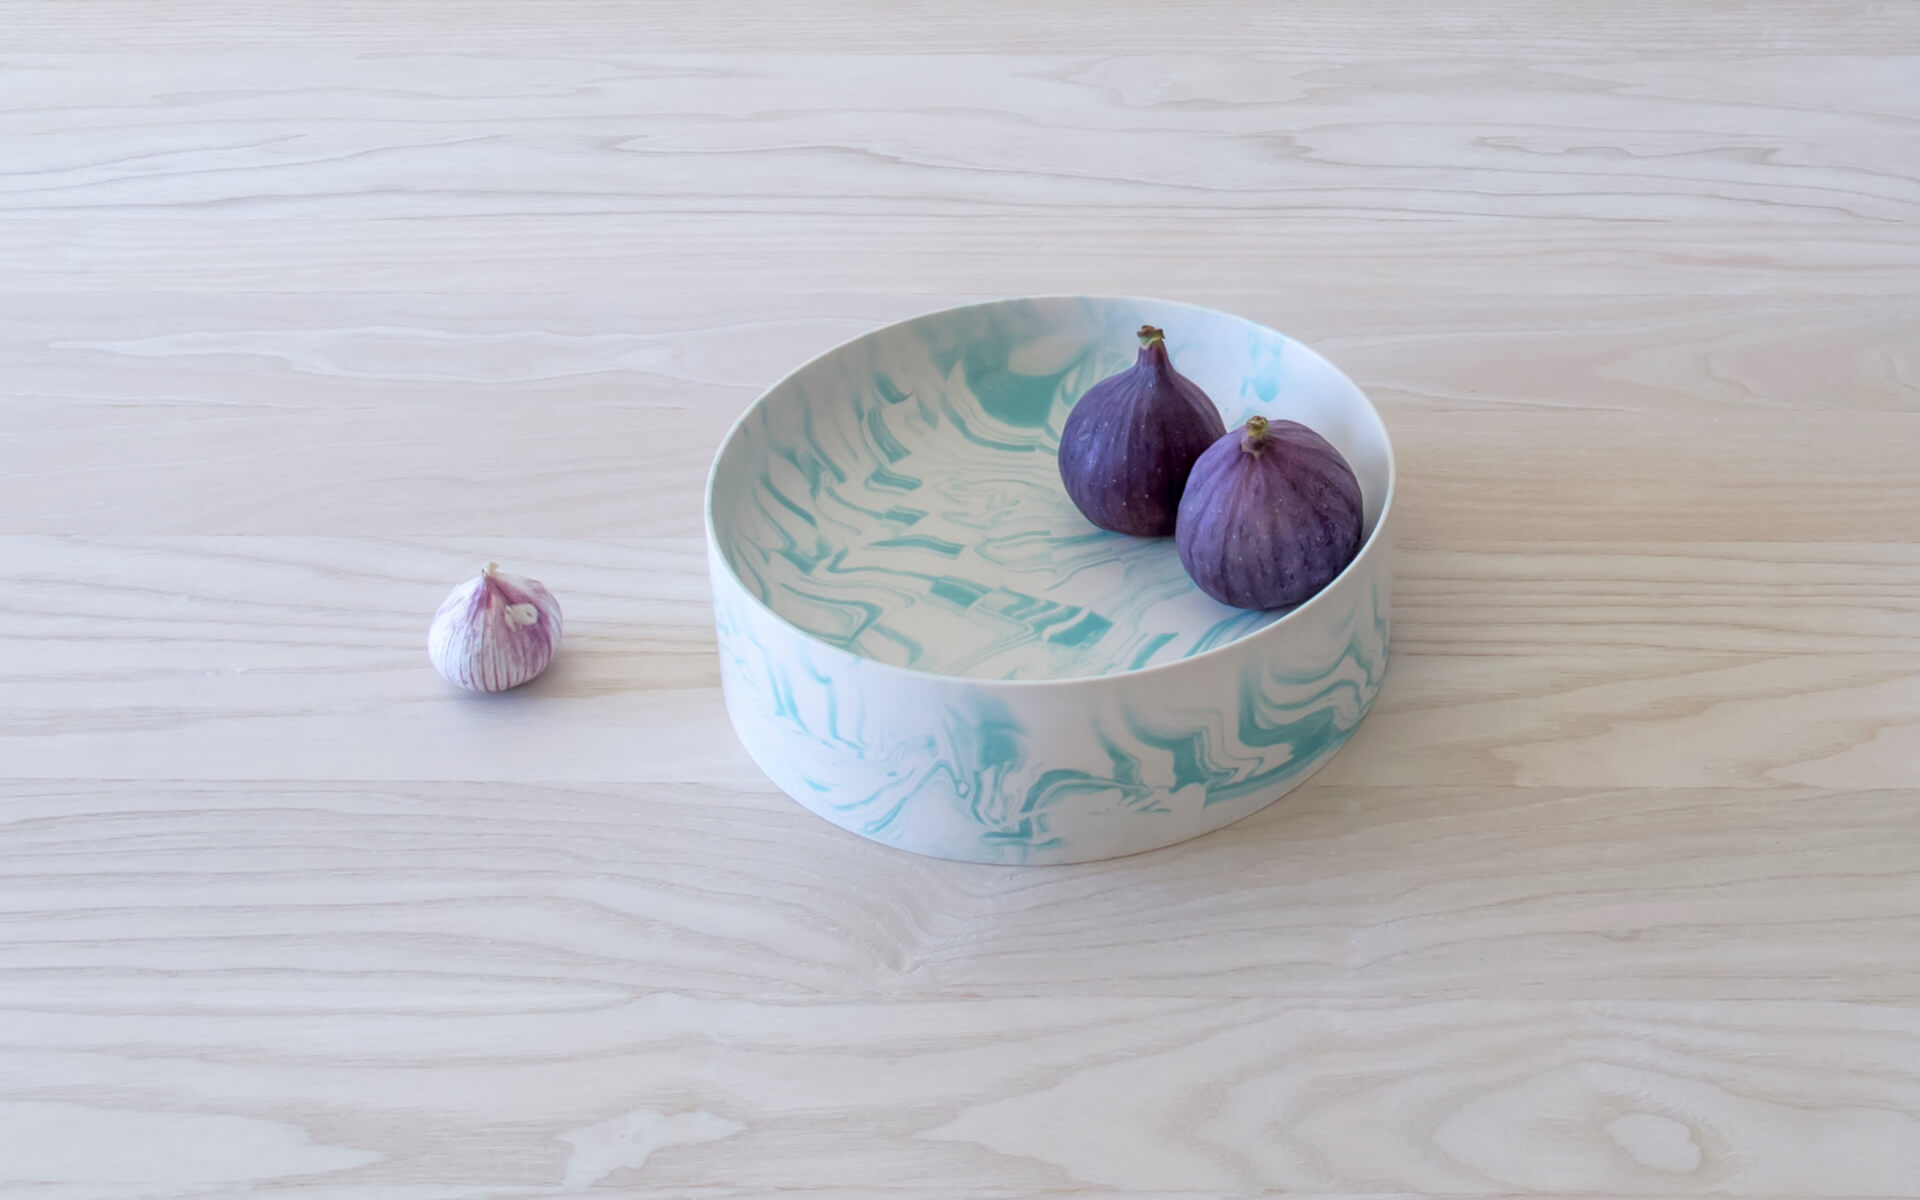 Poured Bowl – Large – White with Light Green – Angled View – Troels_Flensted – 300dpi